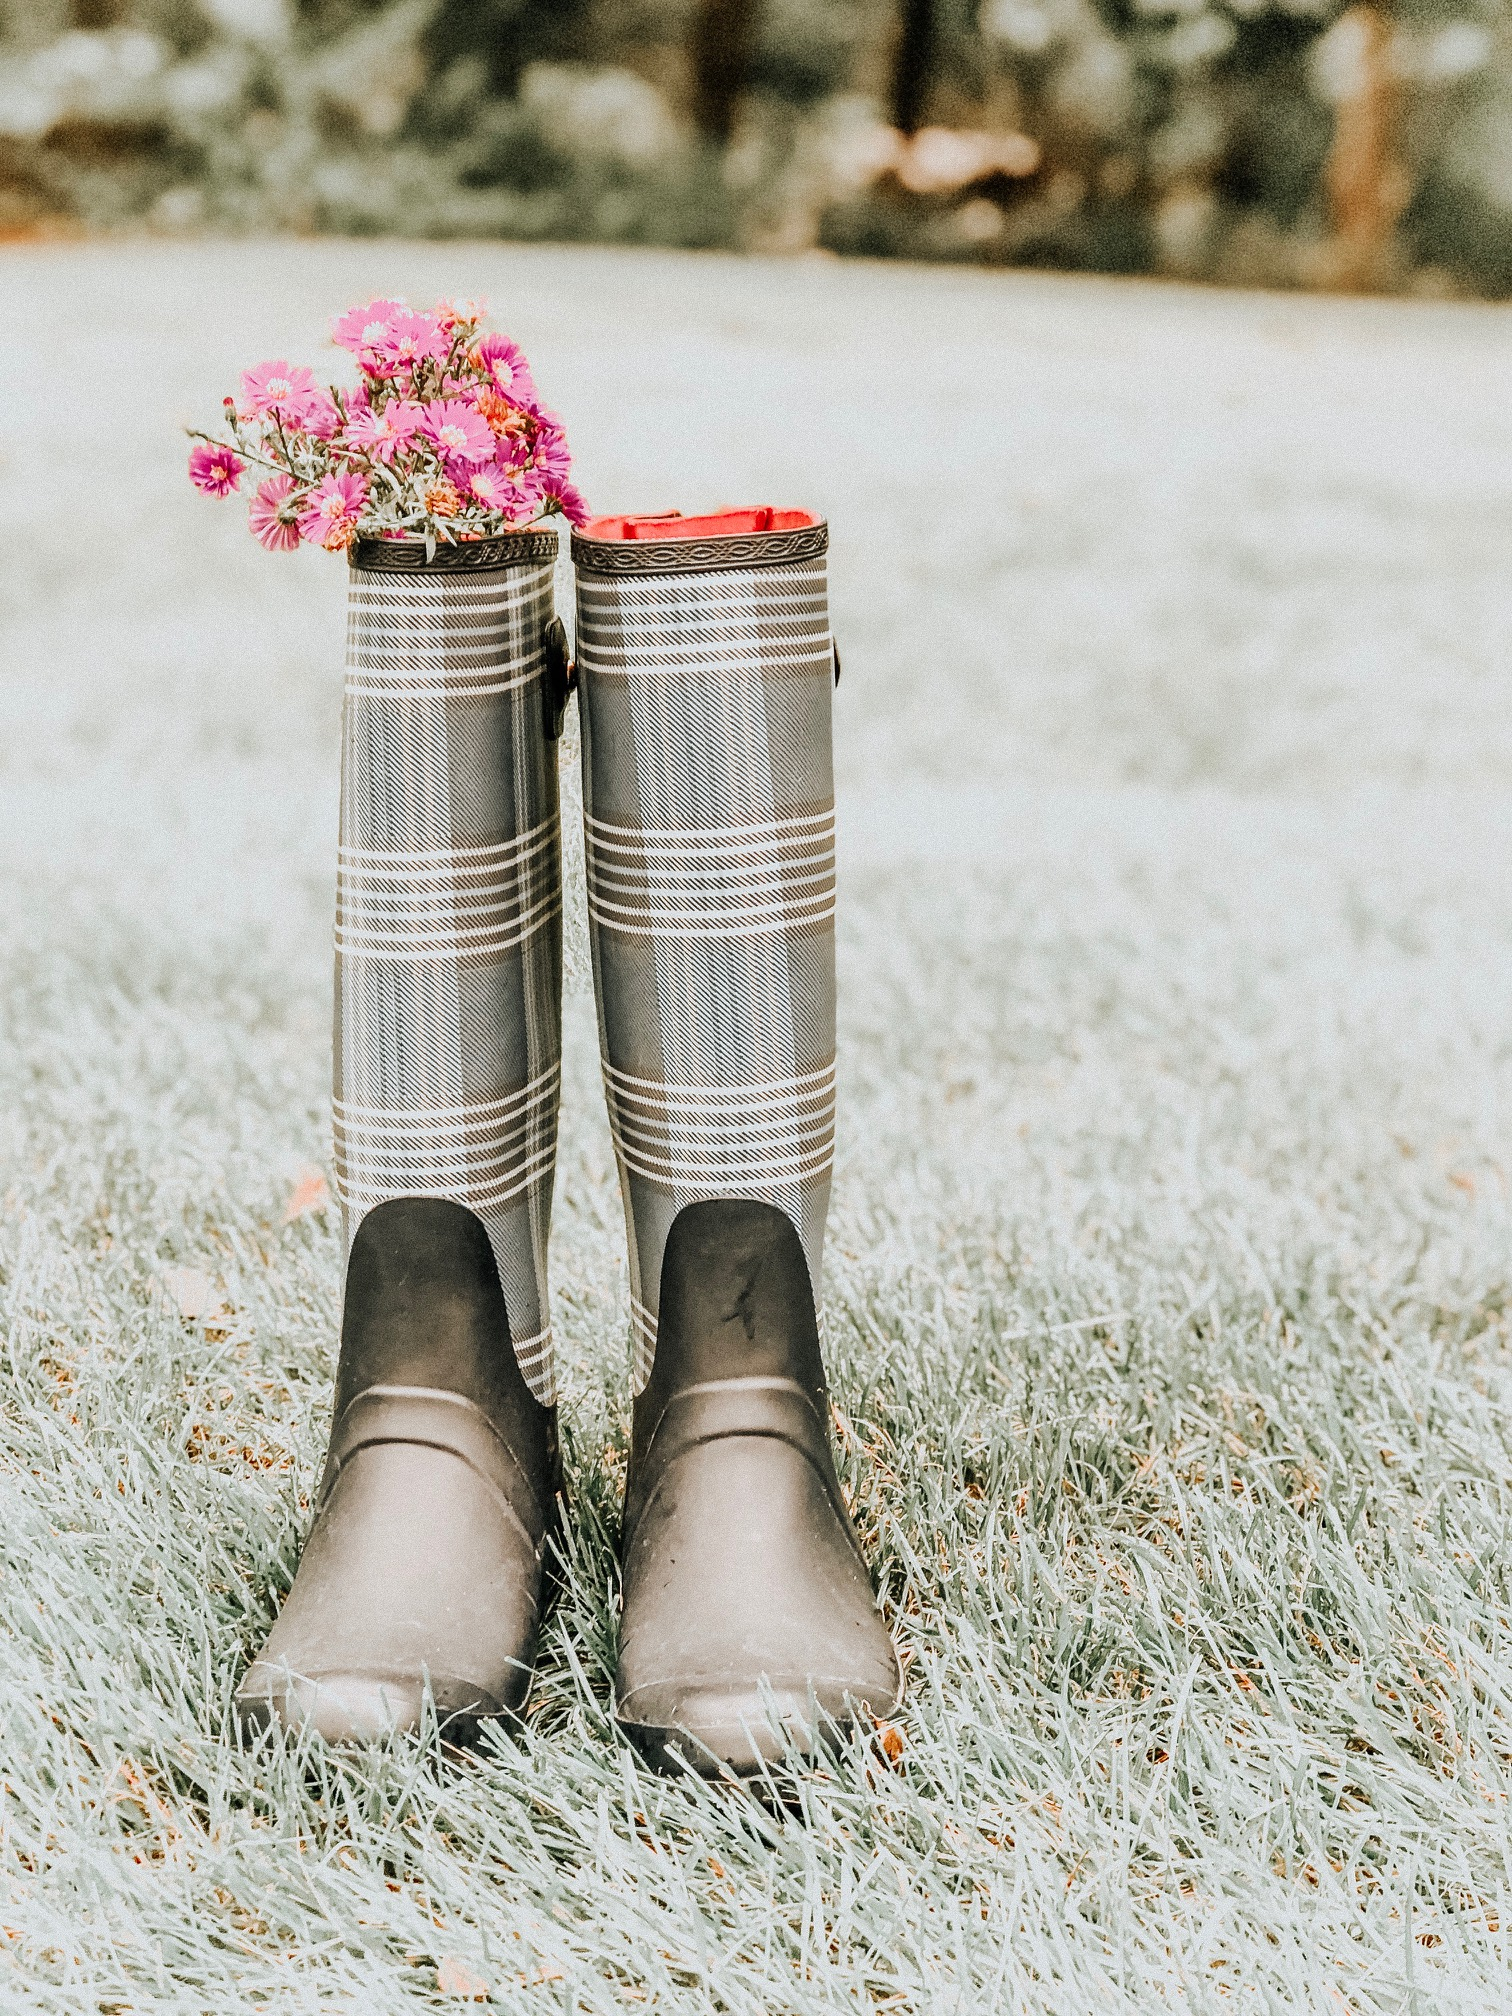 Cute Rain Boots #rainboots #fallfashion #fallstyle #rainydays